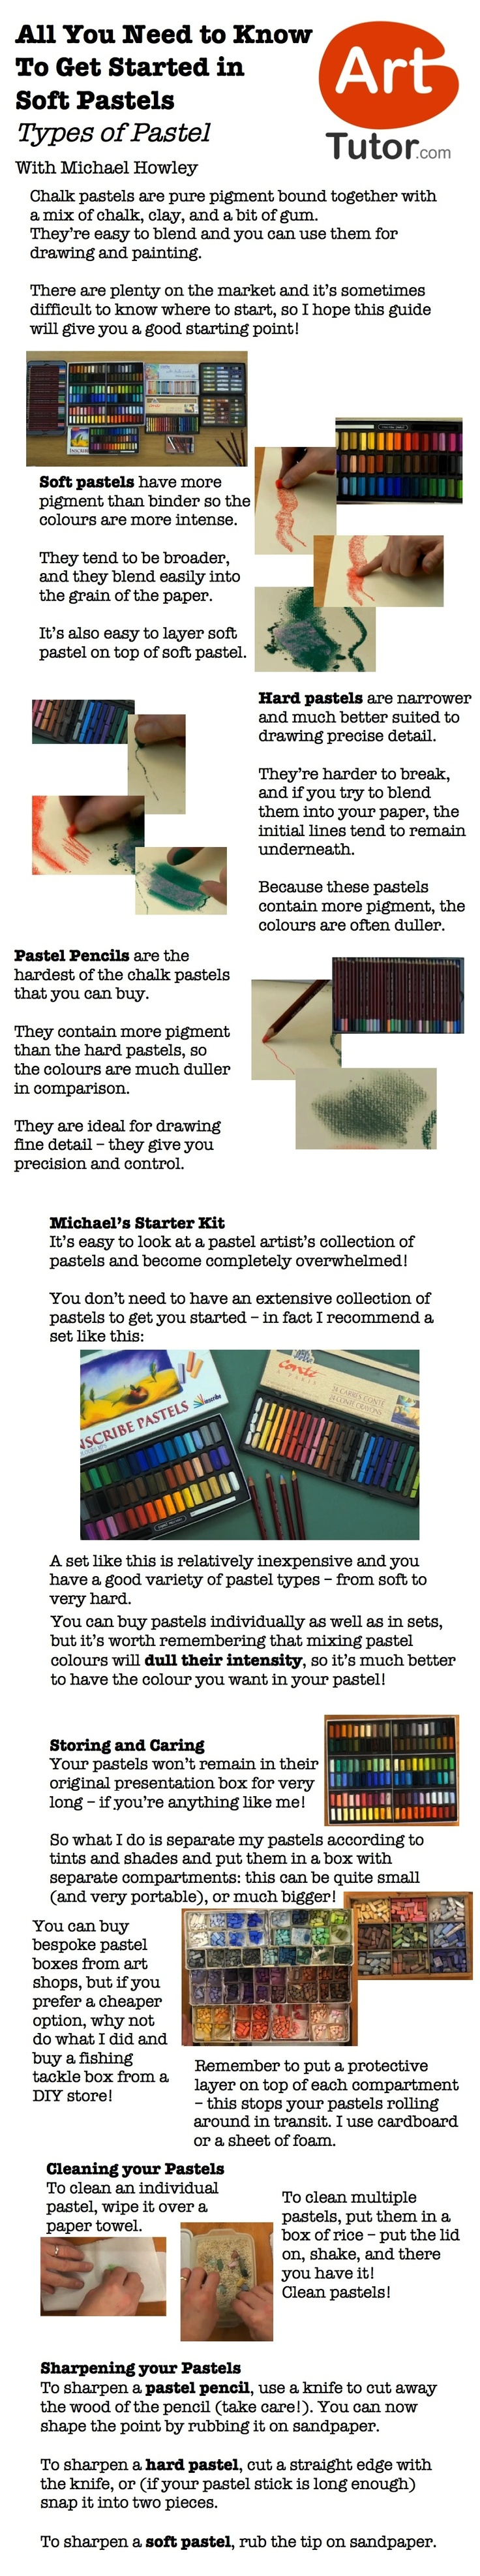 Ever wanted to paint with soft pastels? If so this guide will give you all the information you need to get you started. Taken from Michael Howley's Soft Pastels Foundation Course on ArtTutor.com #pastelpainting